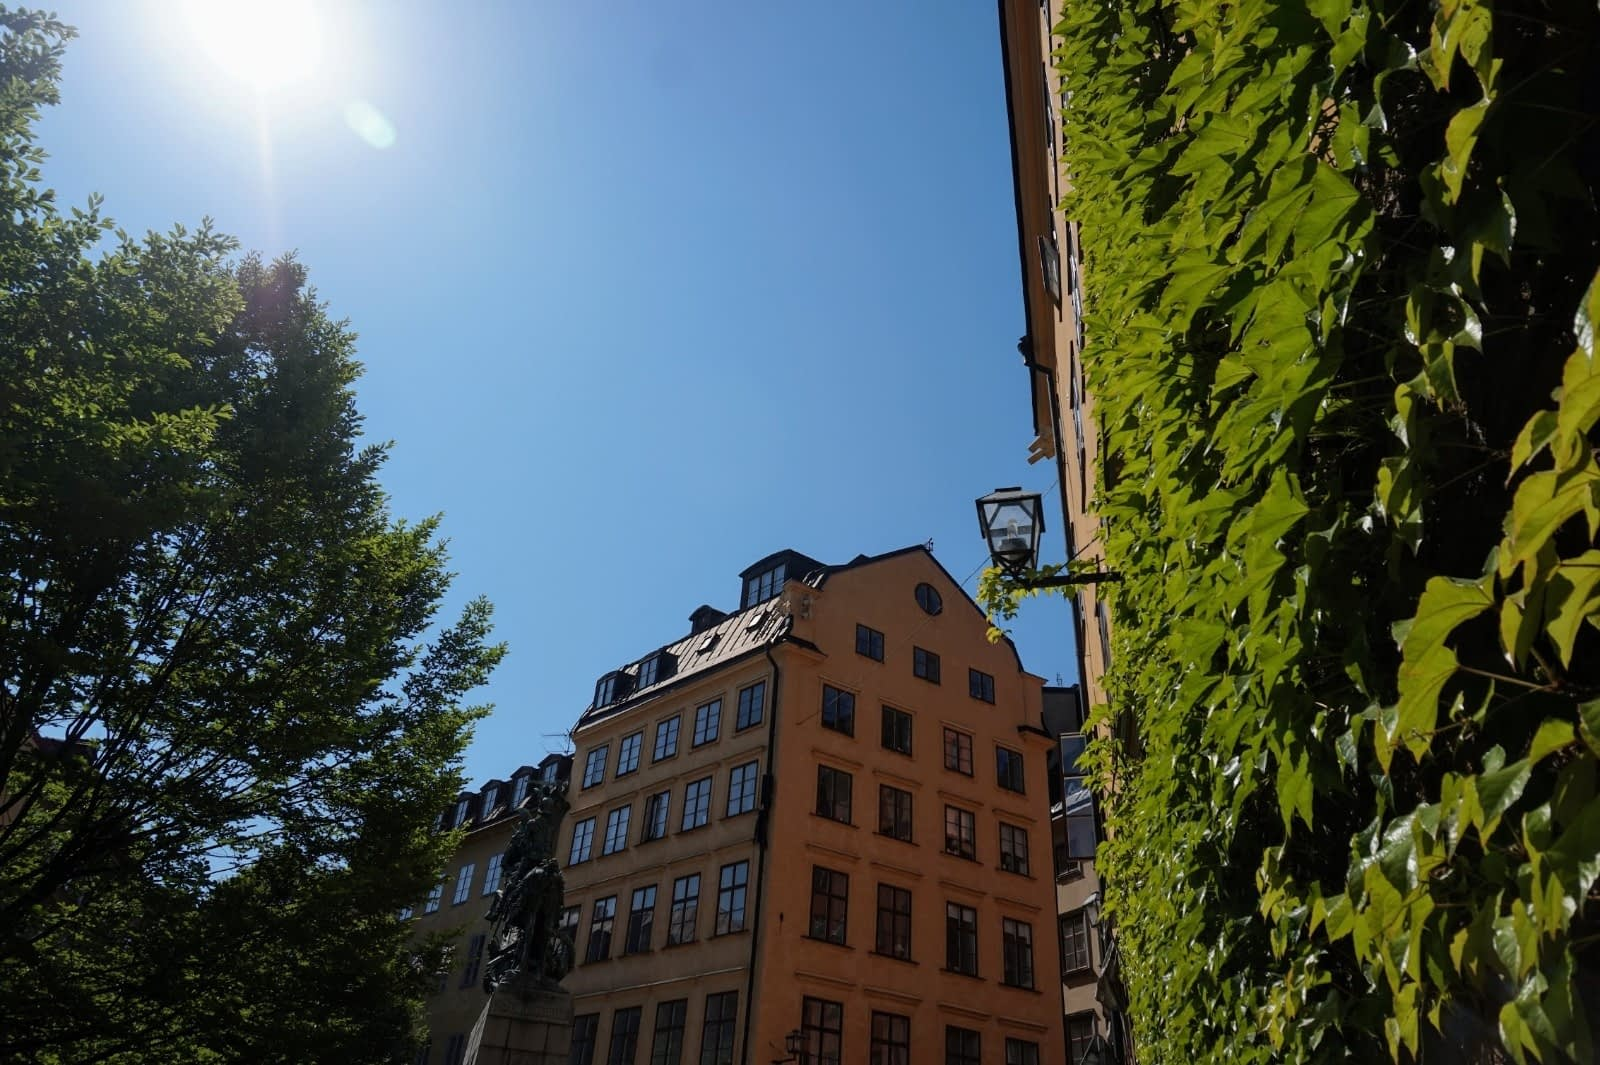 Colourful Houses & Narrow Streets of Gamla Stan, Stockholm 20